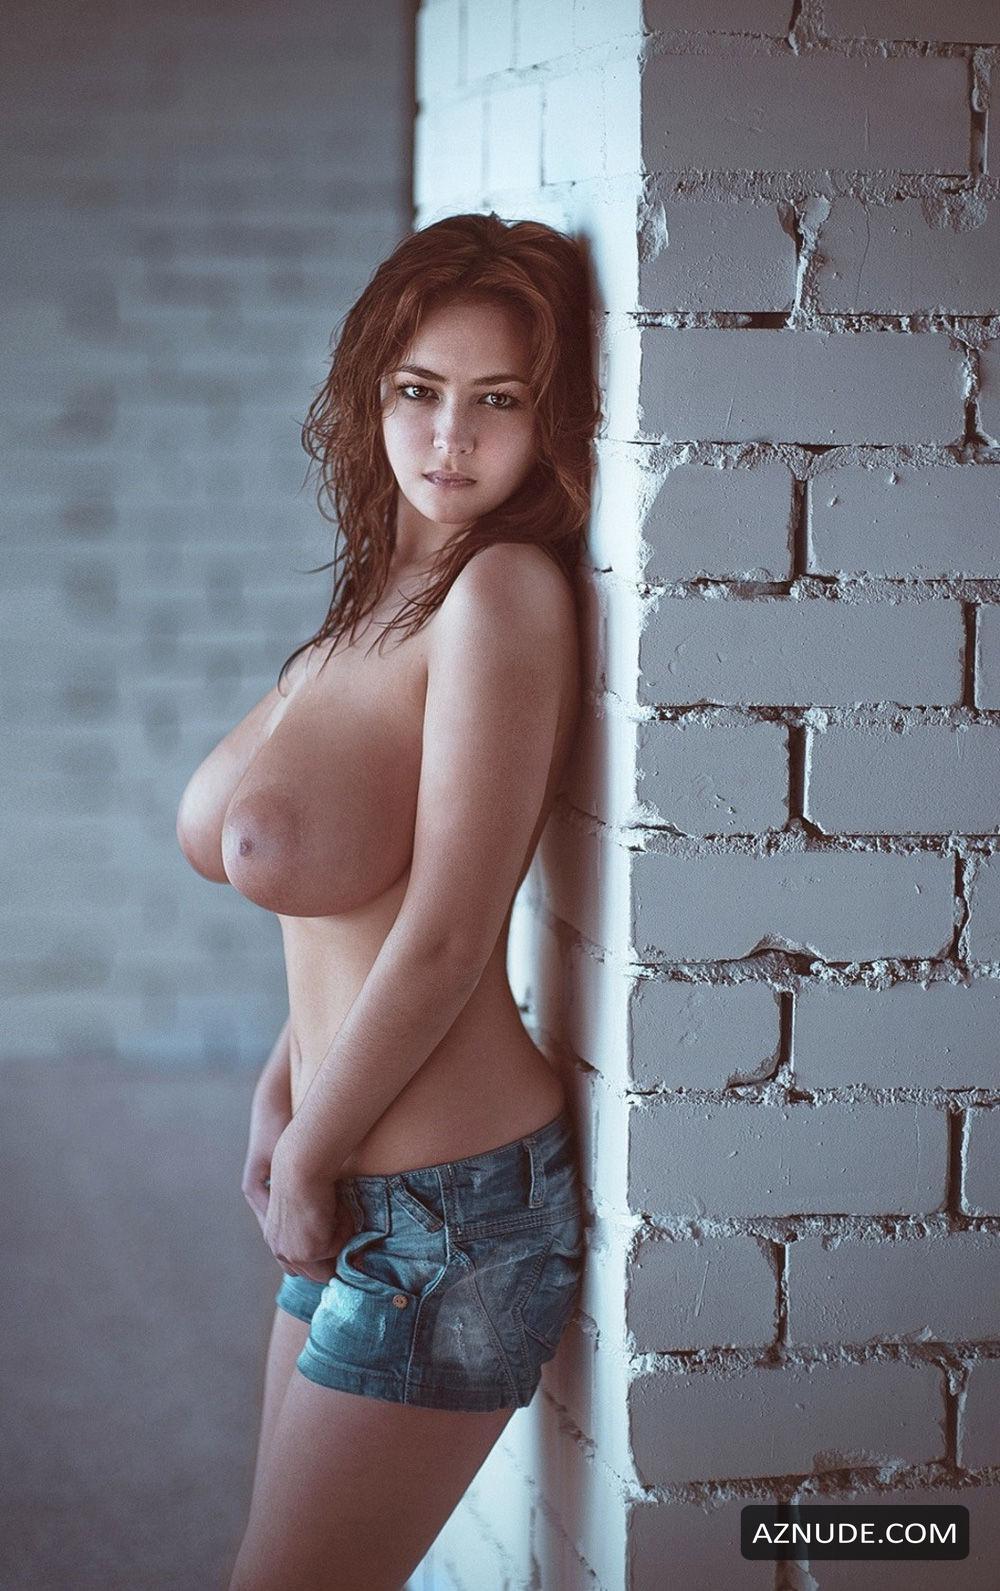 Spanish army girls nude